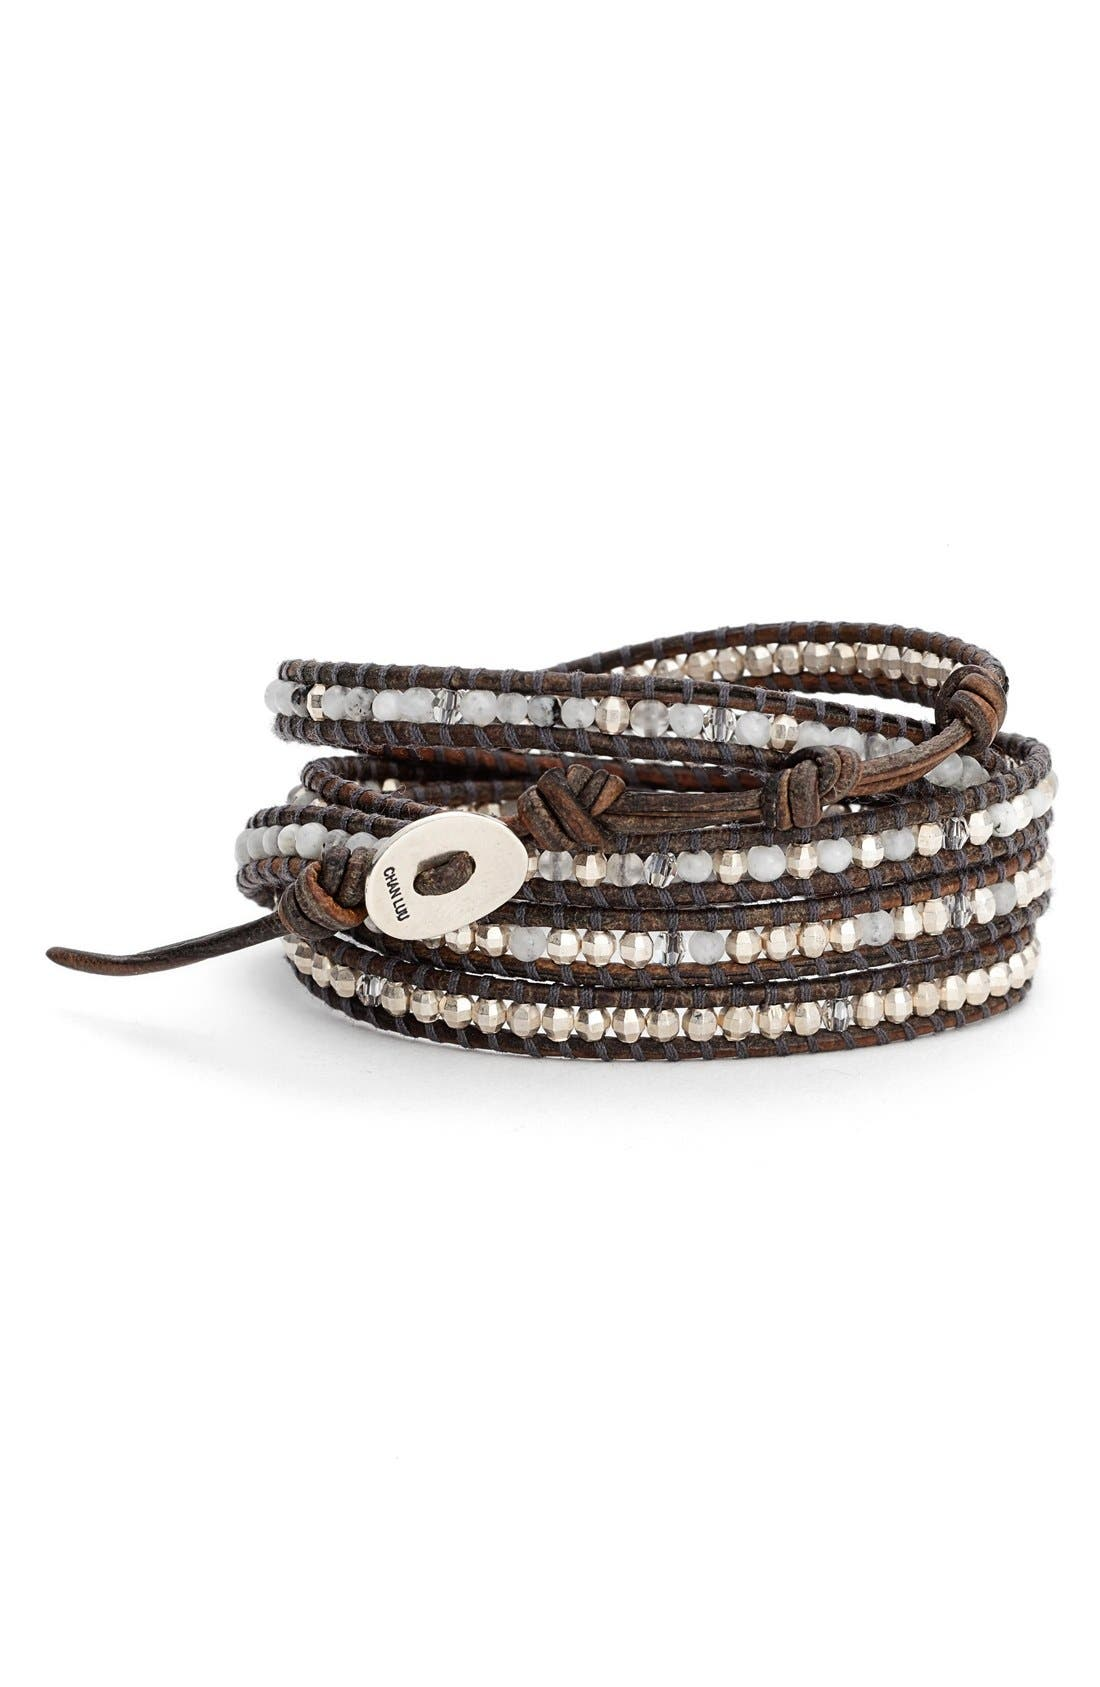 Main Image - Chan Luu Leather Wrap Bracelet